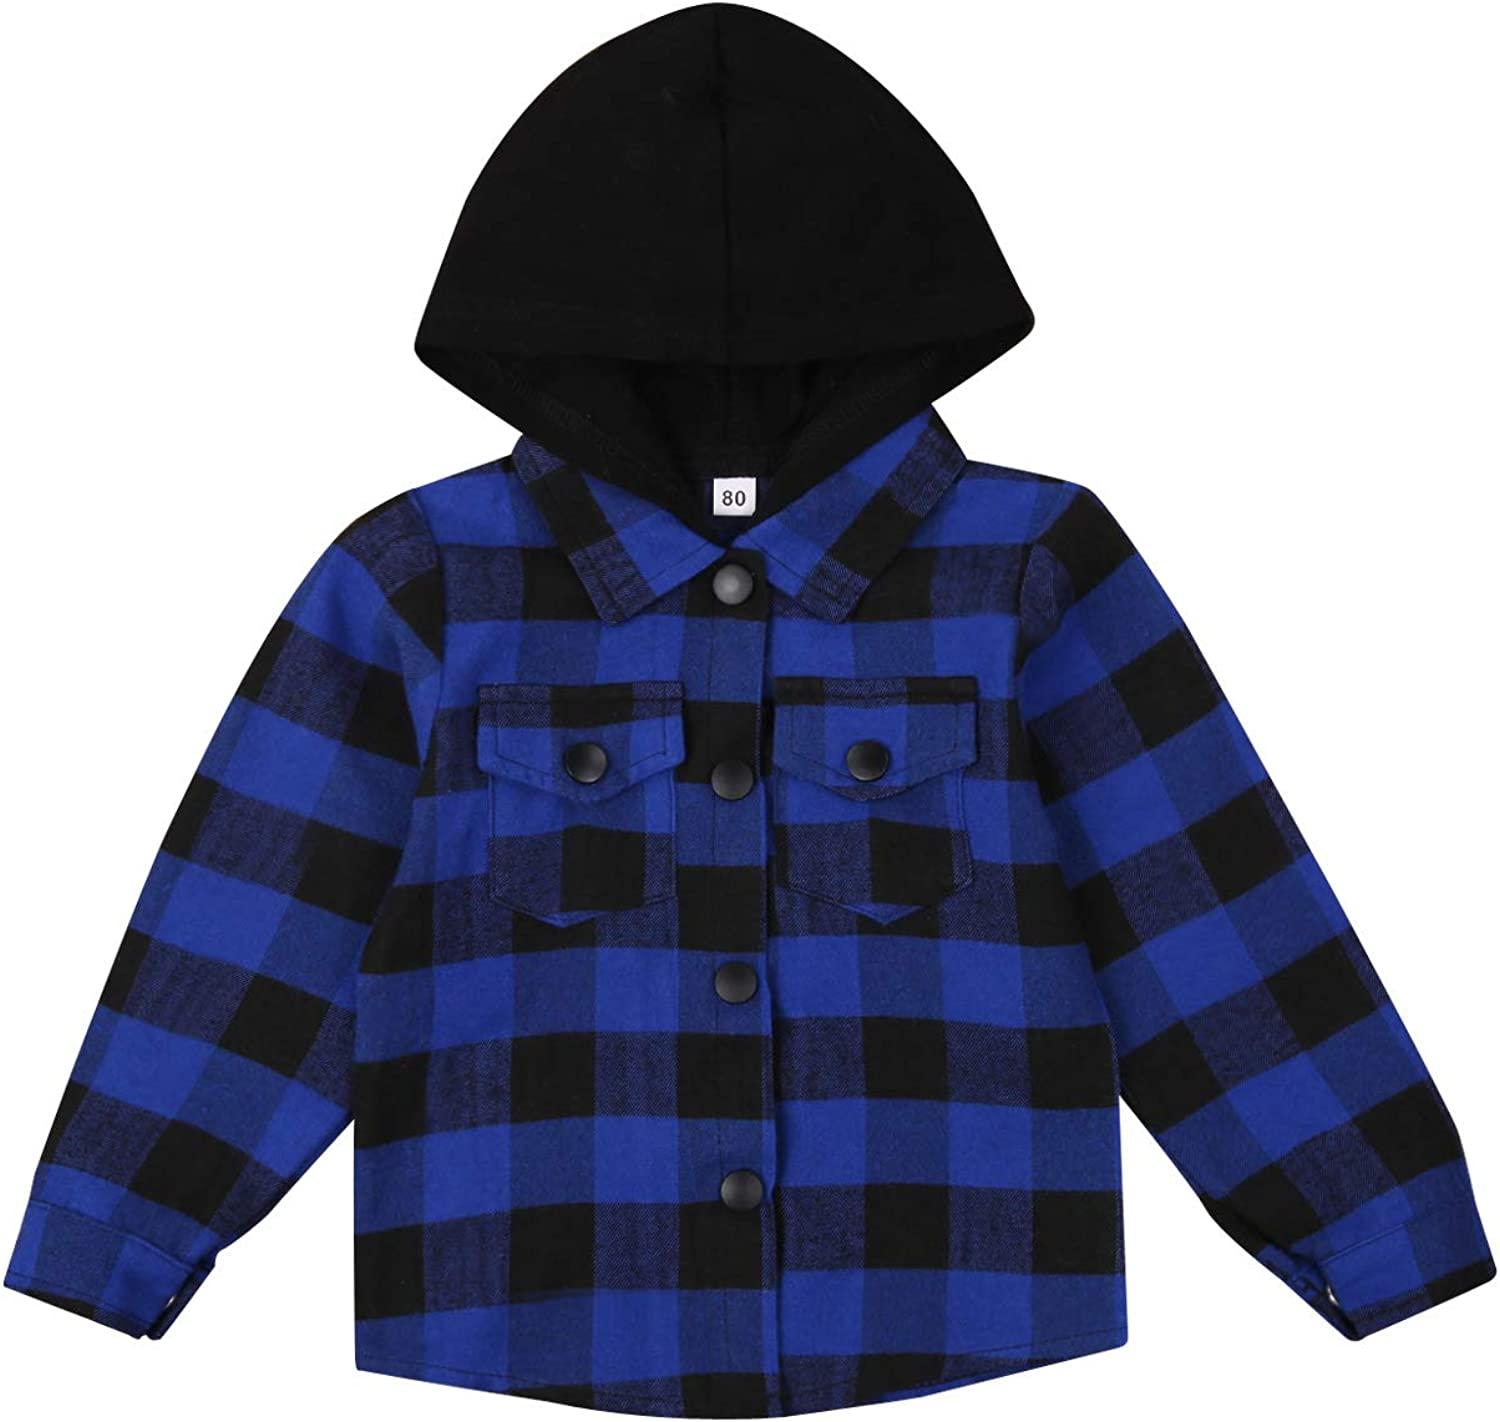 Toddler Baby Boy Hoodies Long Sleeve Button Down Plaid Hooded Shirt Coat Jacket With Pocket Outwear